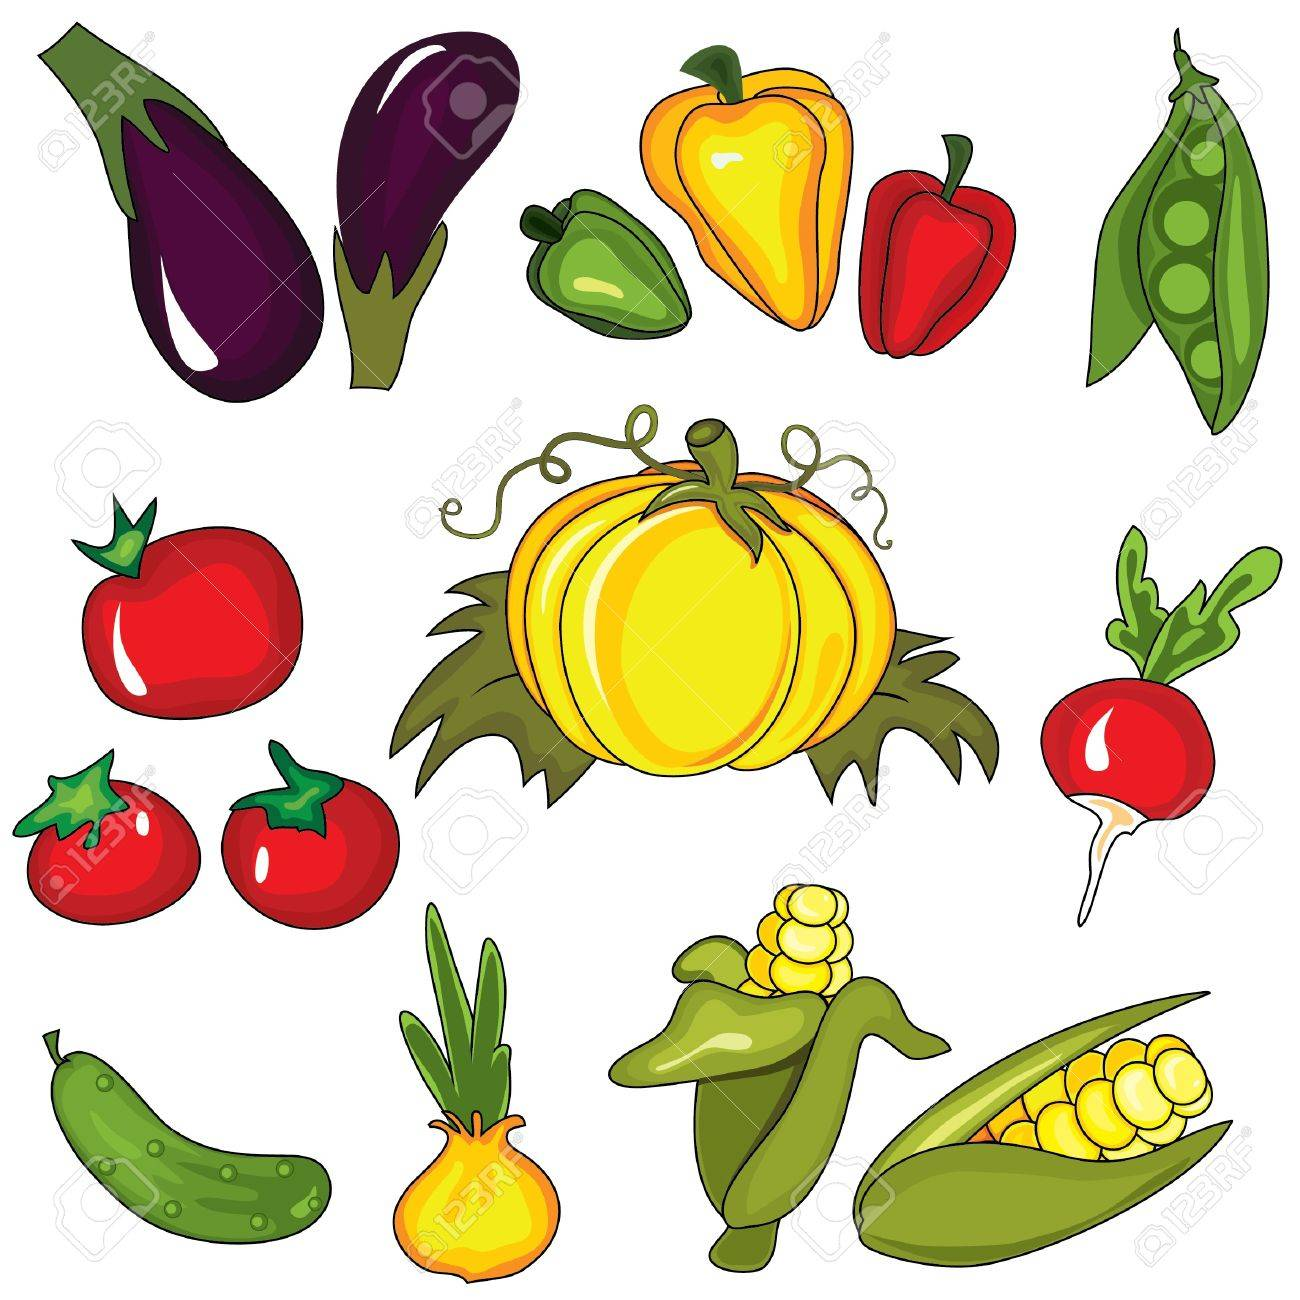 Set of vegetables isolated on the white background. Design elements Stock Vector - 10049629